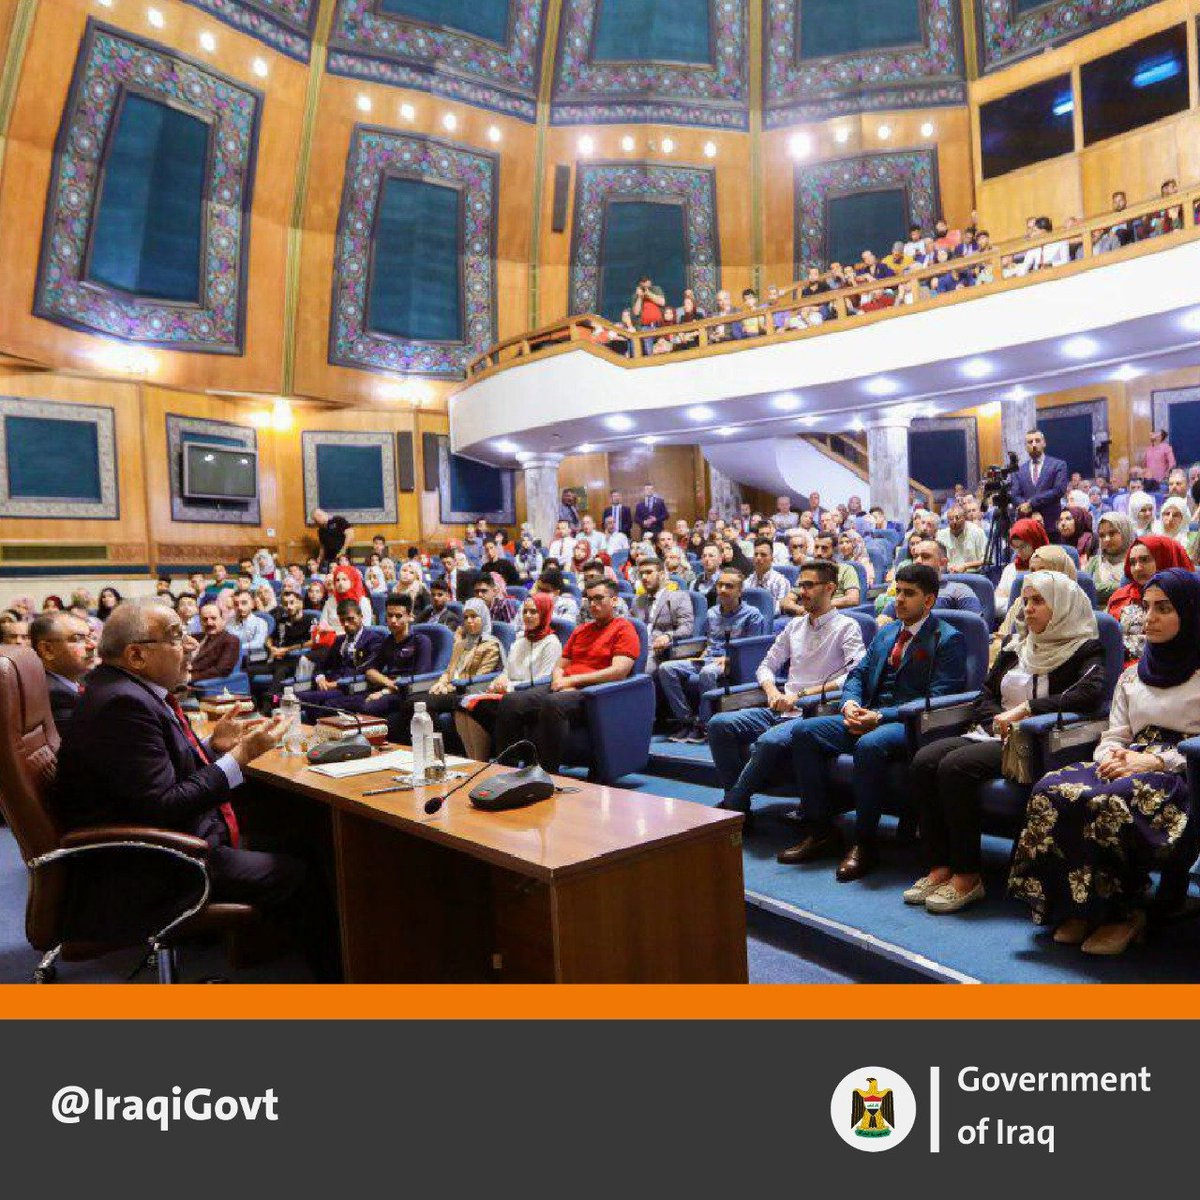 PM @ AdilAbdAlMahdi welcomes in Baghdad the most outstanding students from all Iraqi provinces,  EBNcyrvWsAAfjch